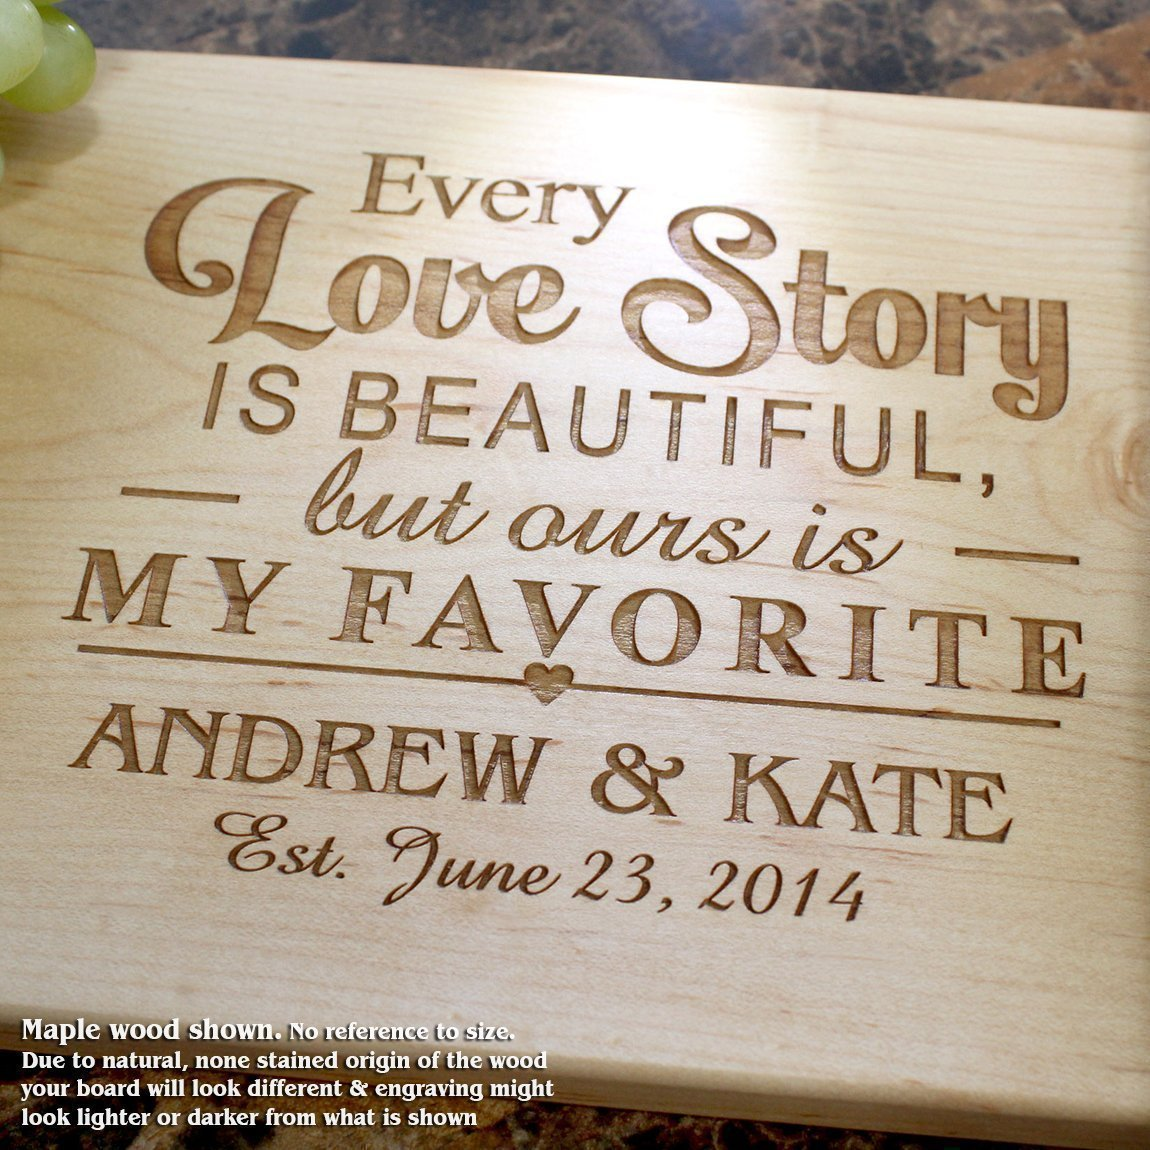 Personalized Cutting Board, Custom Keepsake, Engraved Serving Cheese Plate, Wedding, Anniversary, Engagement, Housewarming, Birthday, Corporate, Closing Gift #013